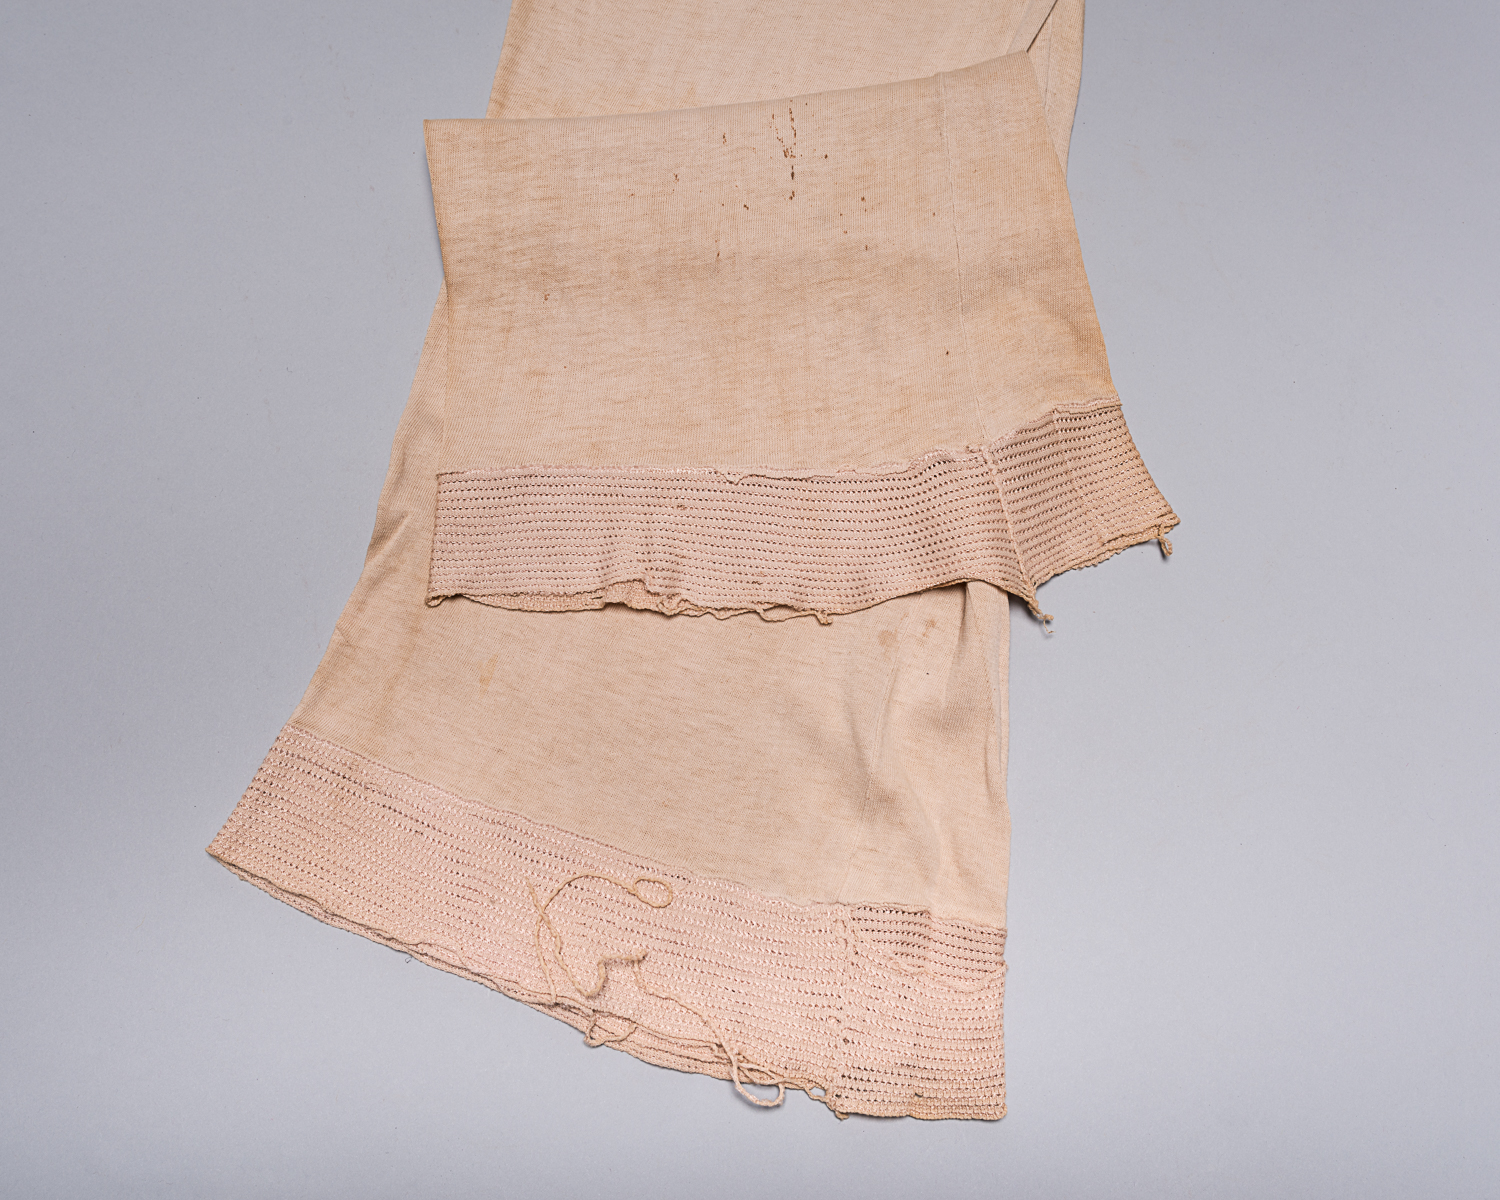 Pola was wearing these undergarments, as pants, up until and during her liberation in November 1944. (Photo: Peter Berra)